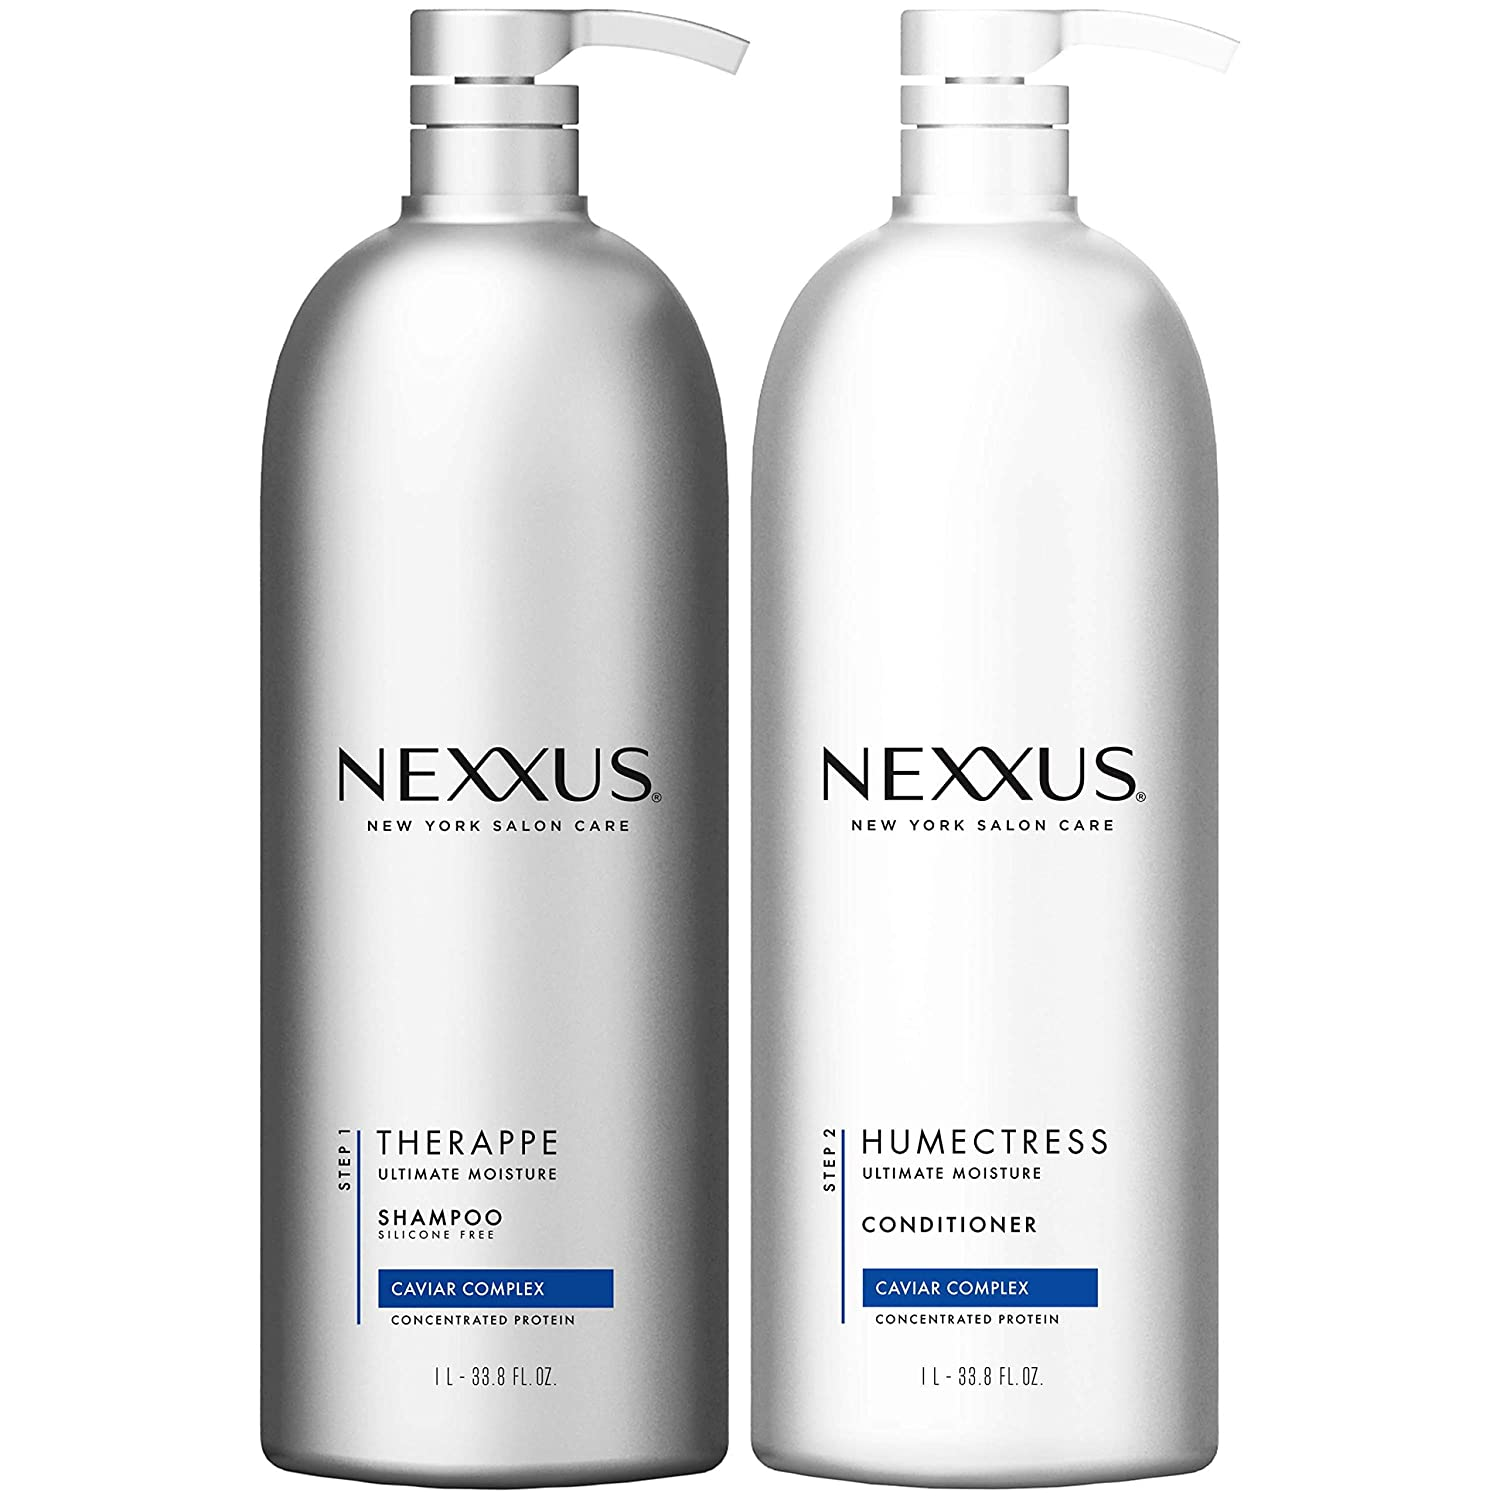 Nexxus Therappe Humectress Combo Pack Shampoo and Conditioner 33.8 oz, 2 count